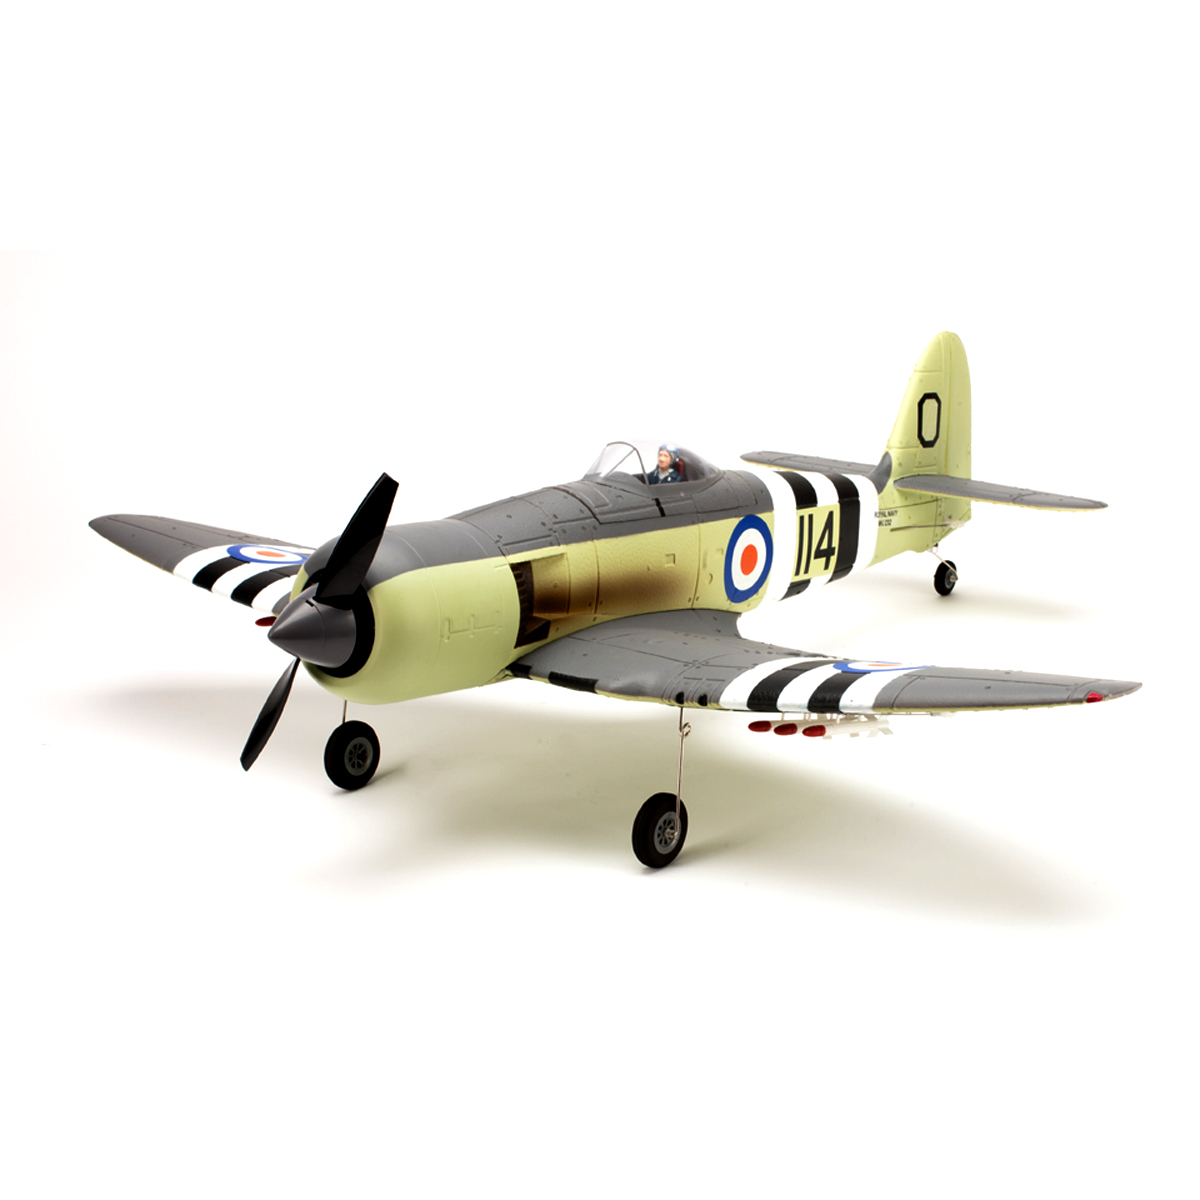 The new E-flite Sea Fury